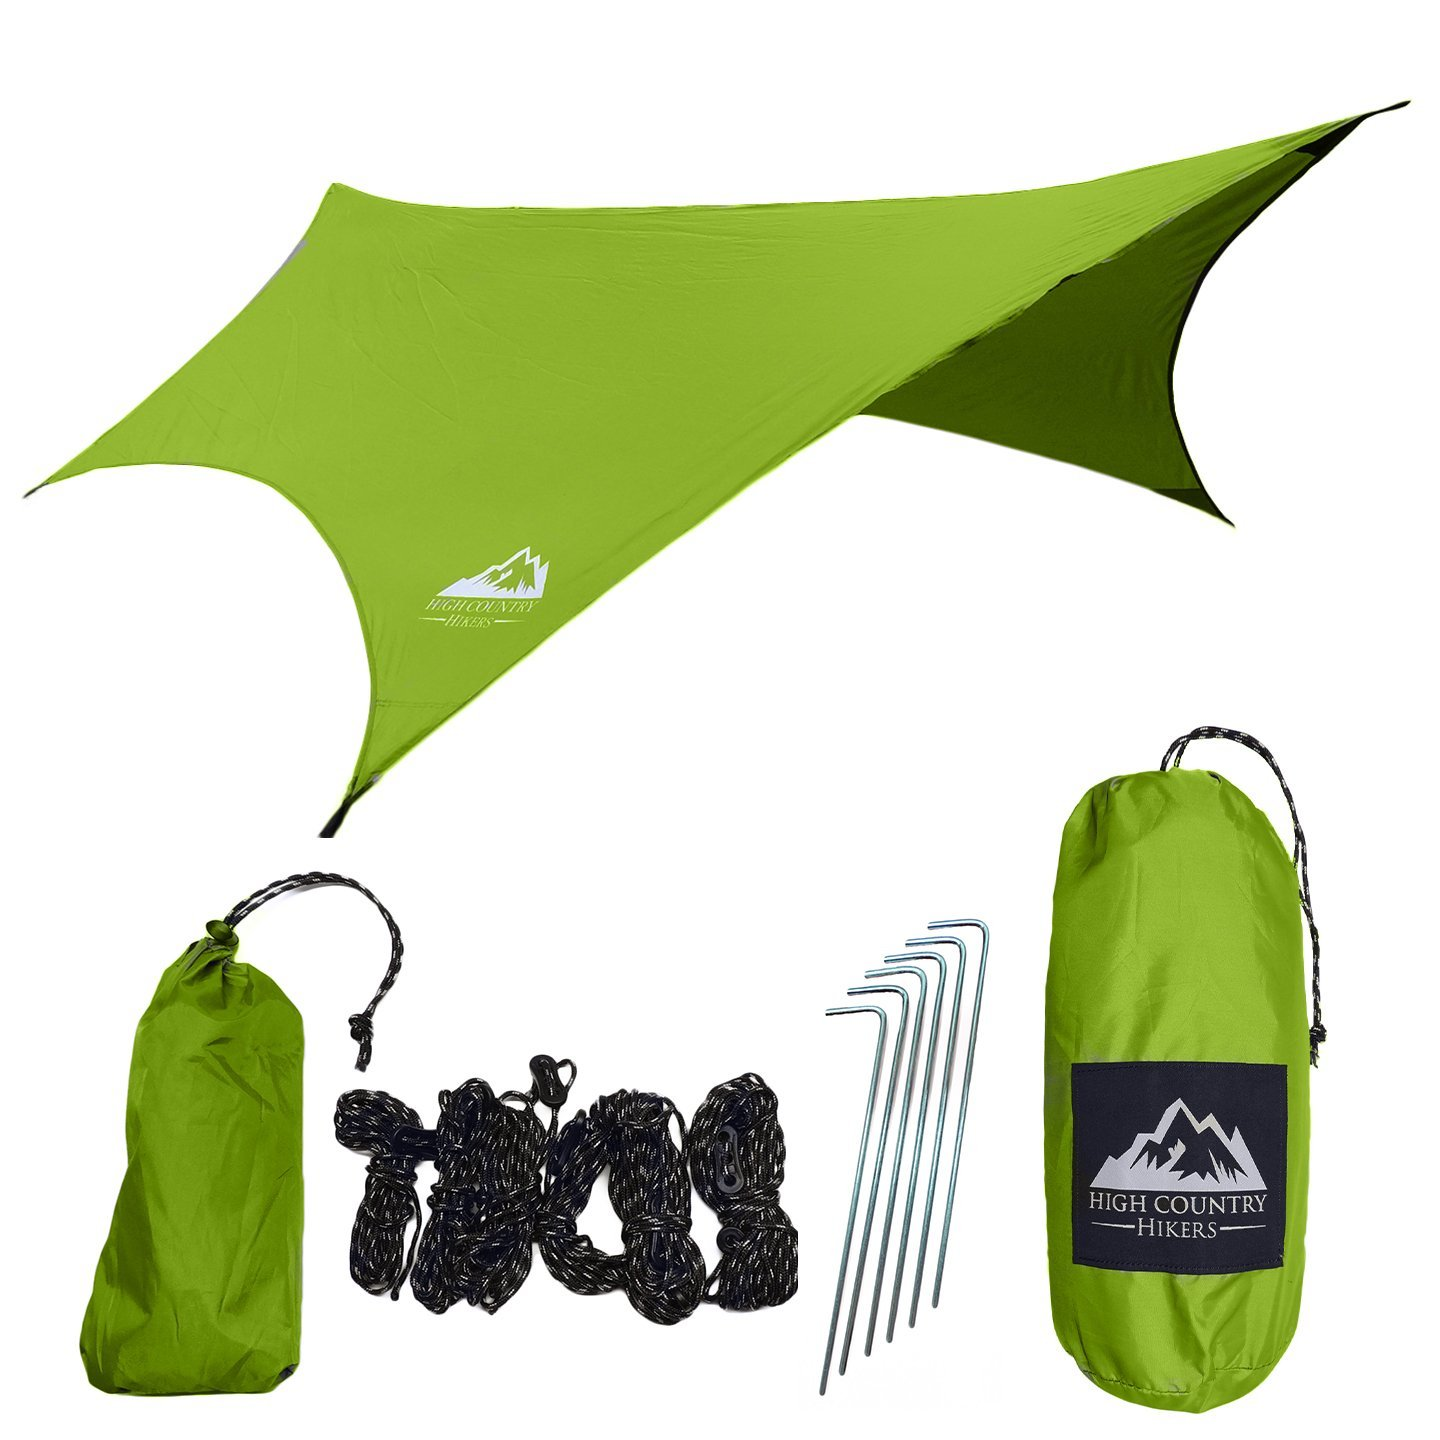 High Country Hikers Hammock Rain Fly Tent Tarp: DIAMOND RIPSTOP Nylon, Water Proof, Lightweight, Includes Stakes & Ropes, Great for Camping, Hiking, Backpacking, Travel | By